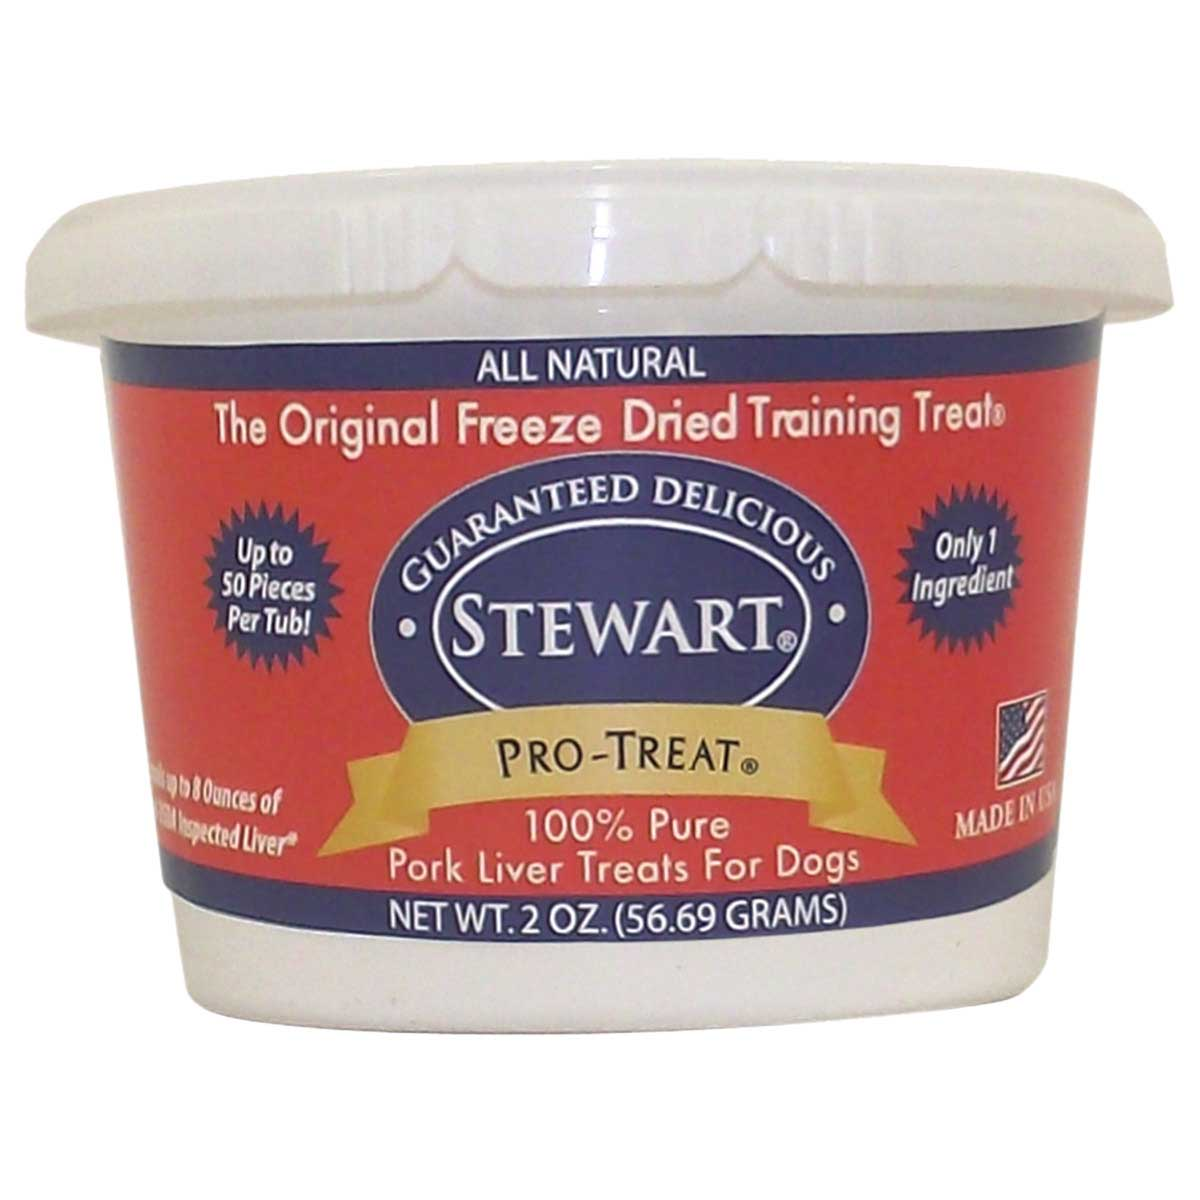 Stewart Pro-Treats For Dogs - Freeze Dried Pork Liver